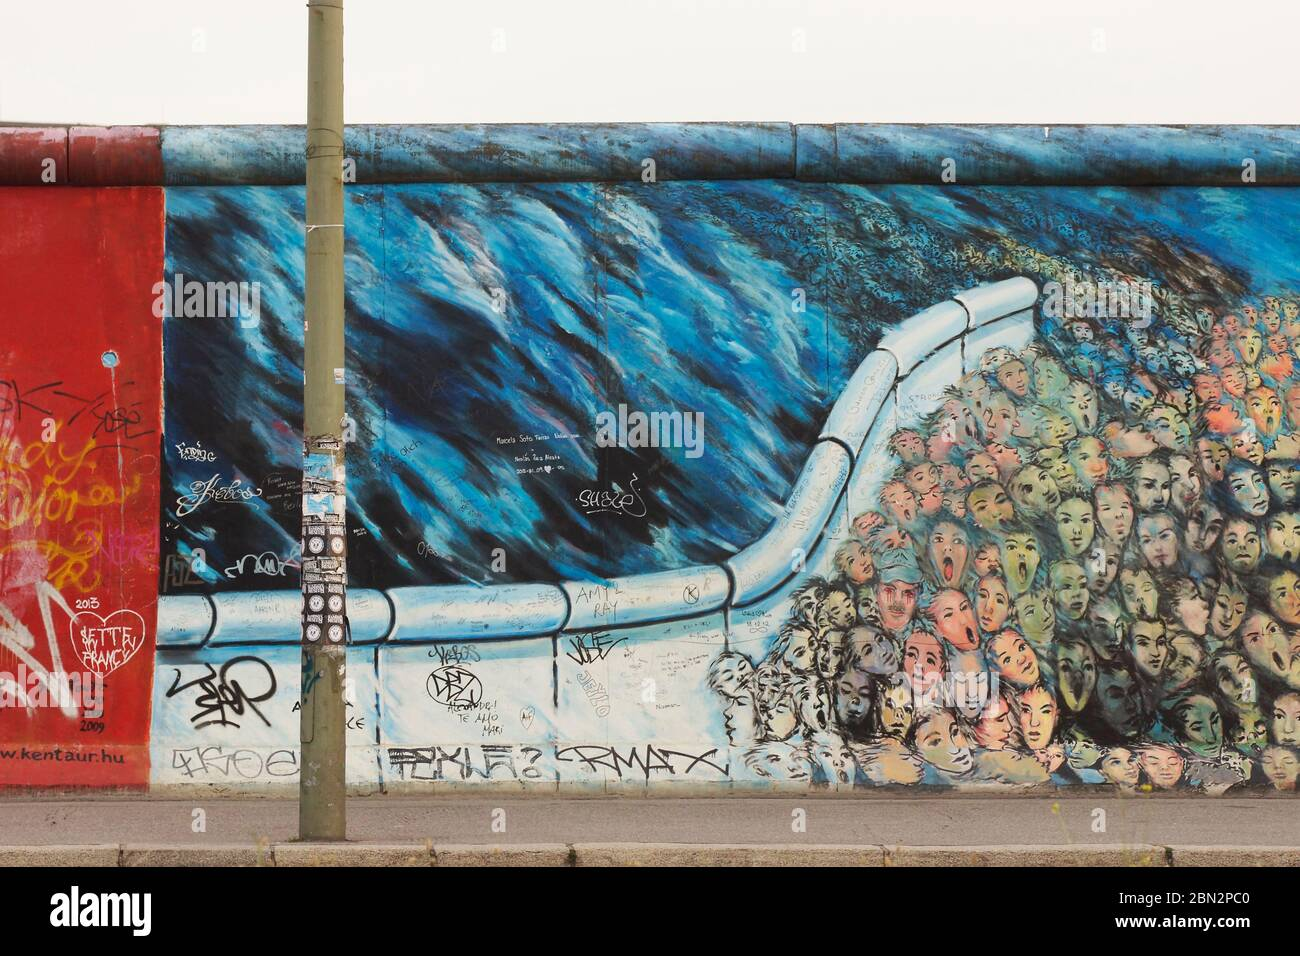 Berliner Mauer Graffiti High Resolution Stock Photography And Images Alamy